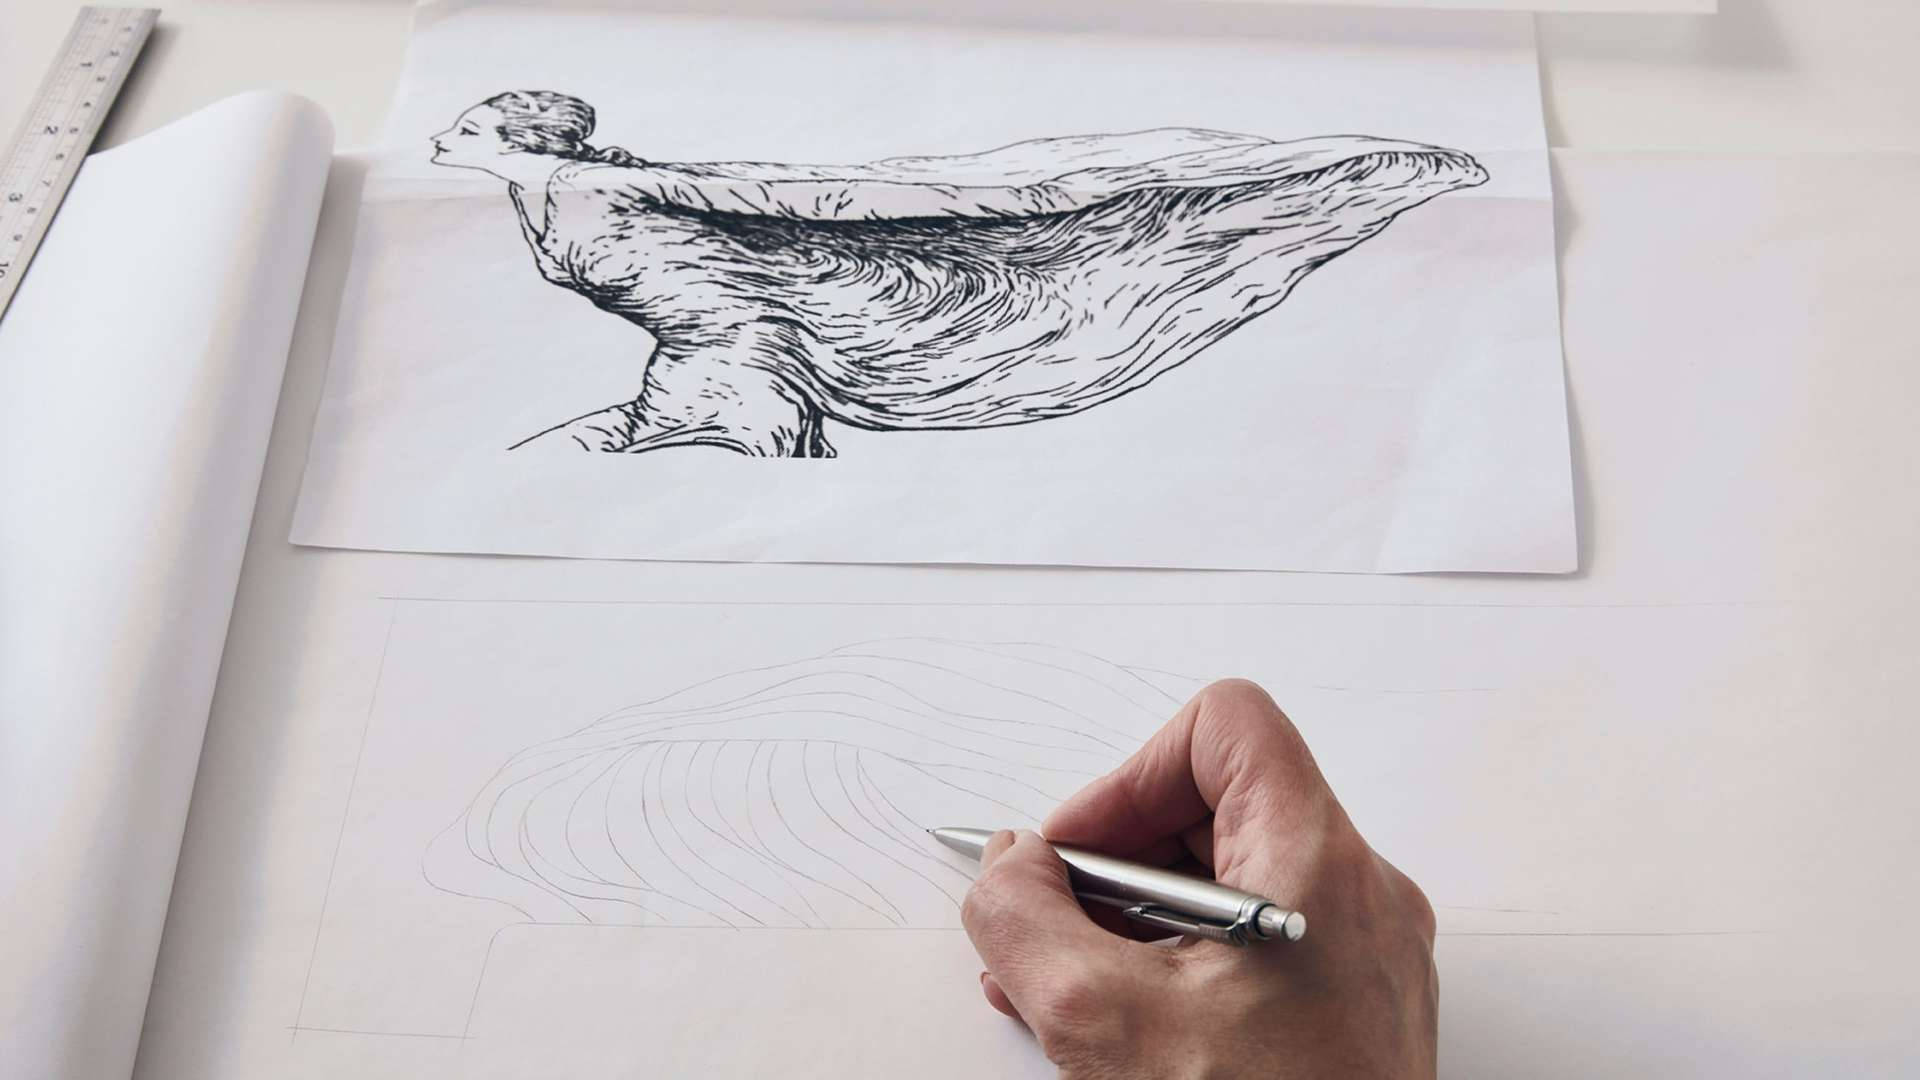 An image showing designer Helen Ann Murrey taking inspiration from an old illustration of the Spirit of Ecstasy to create a Phantom Gallery